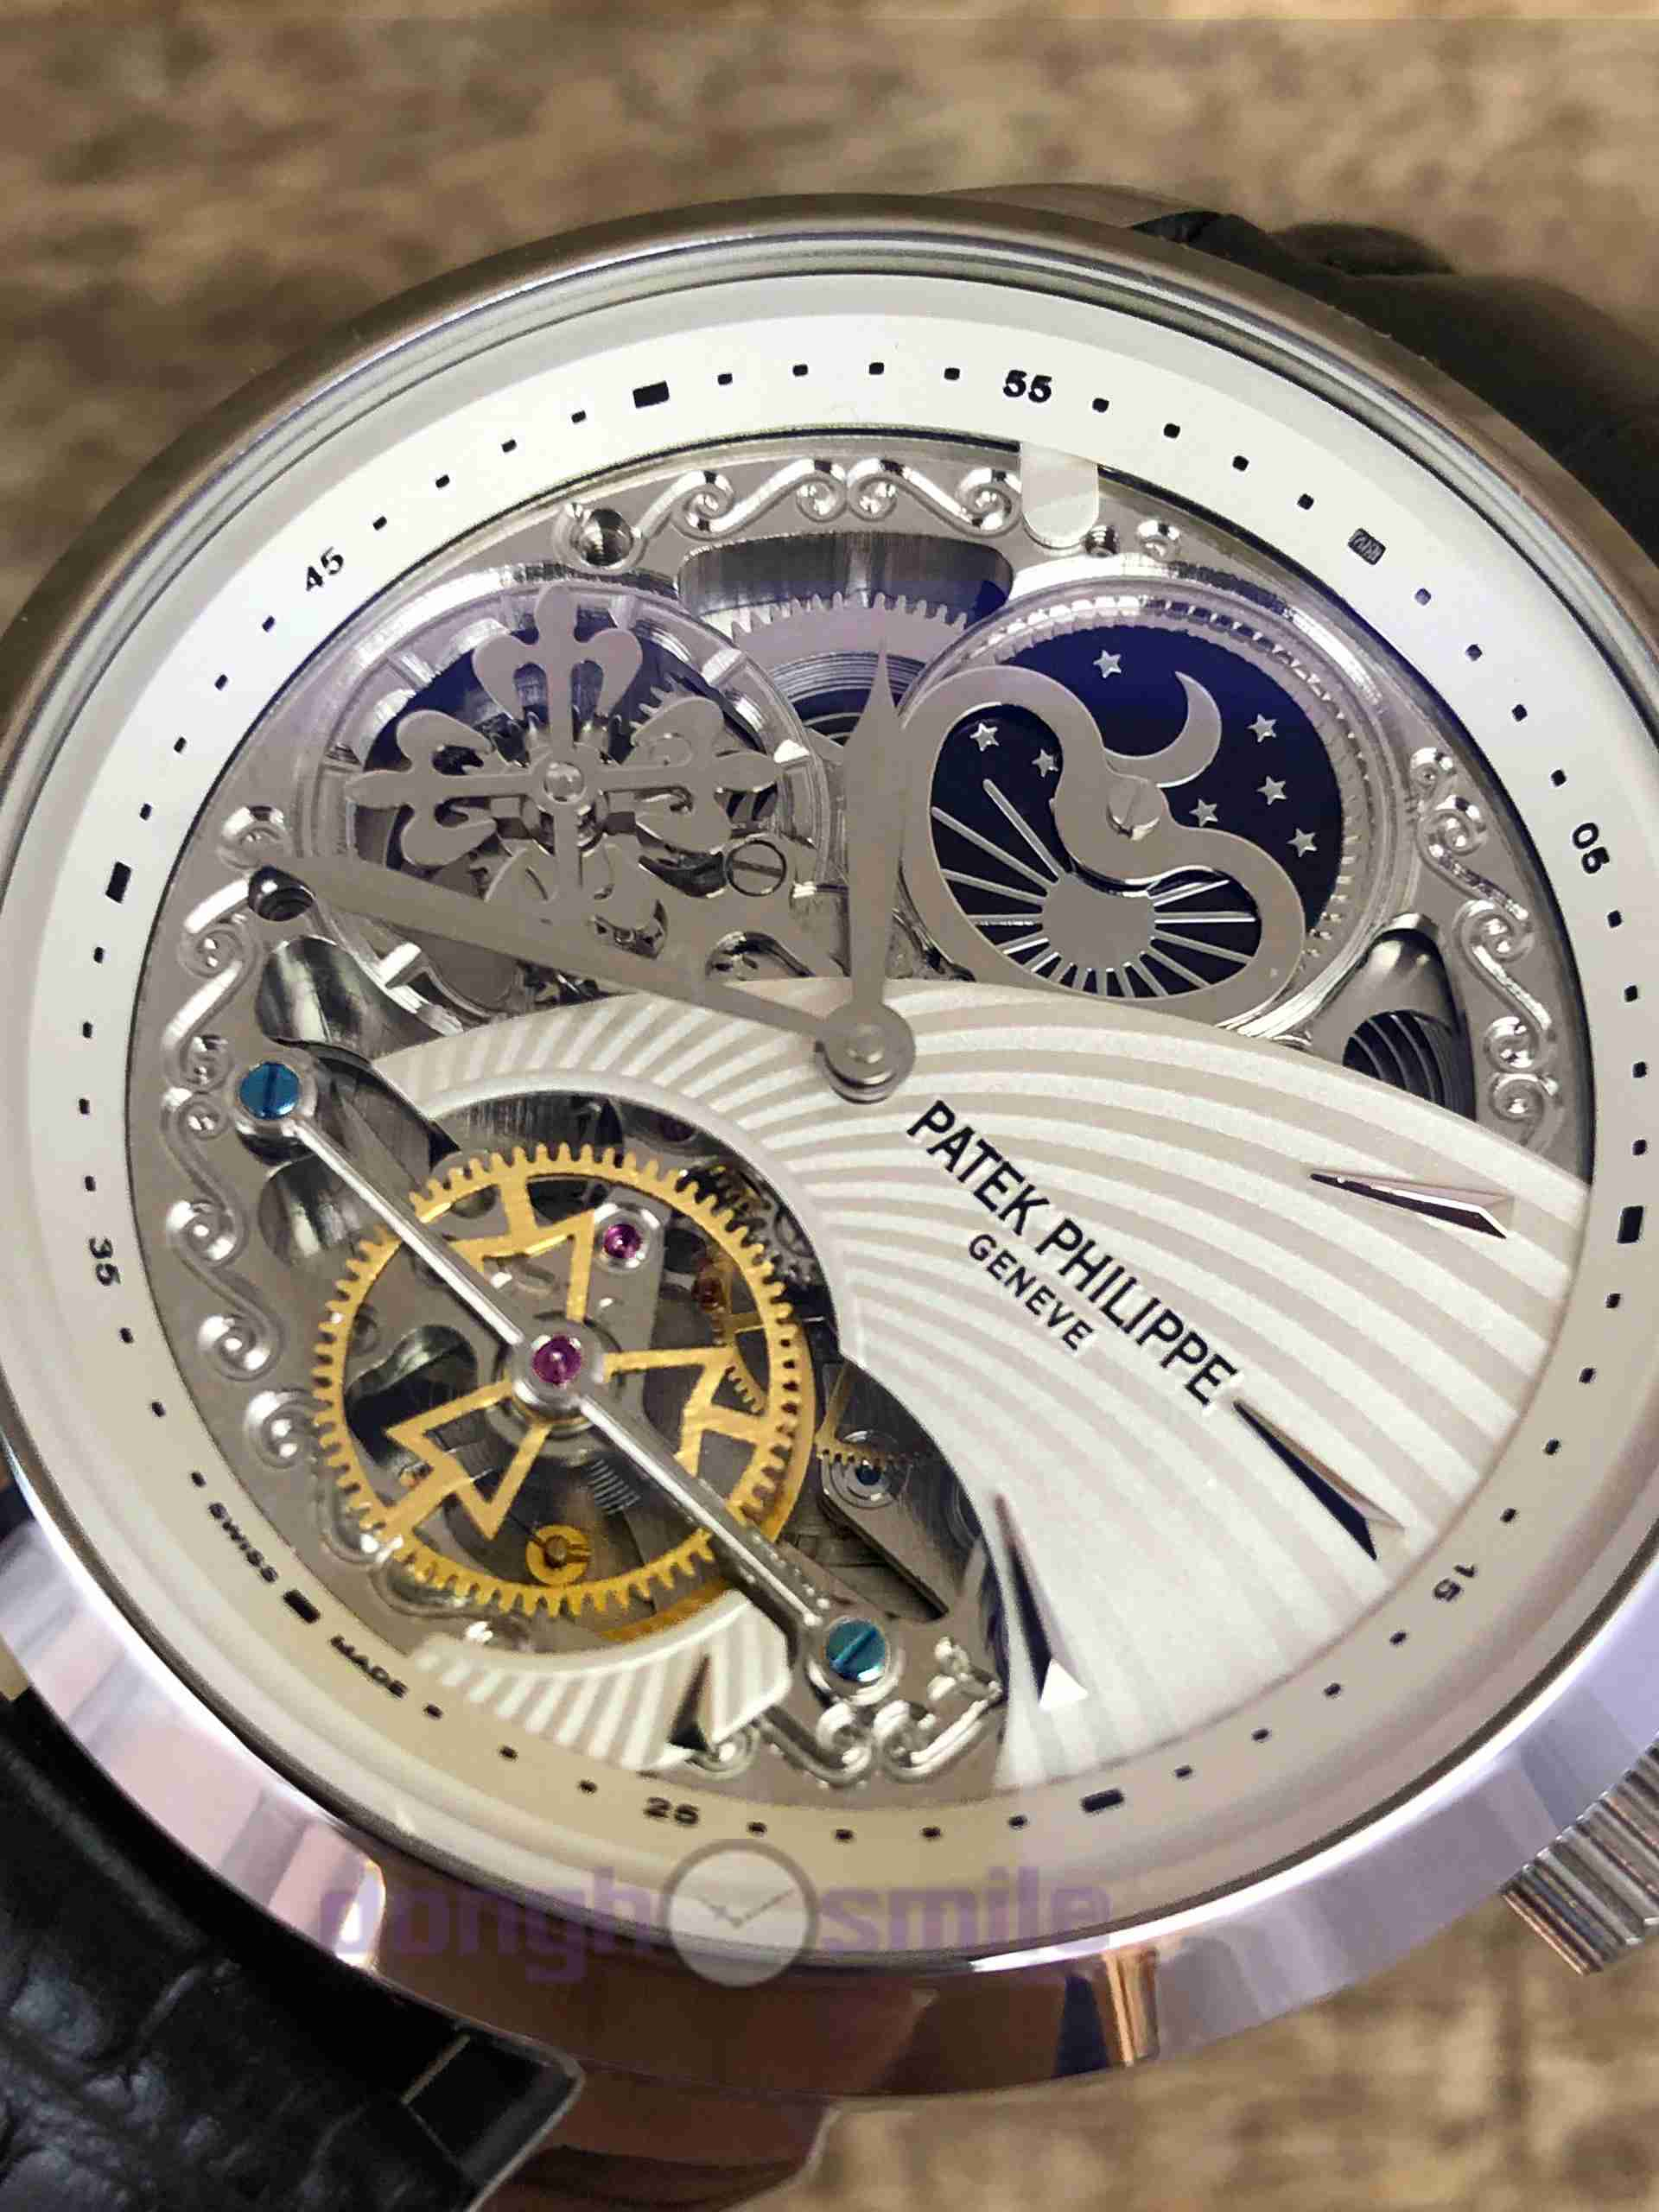 dong-ho-patek-philippe-geneve-gia-tot-a-pp114-4